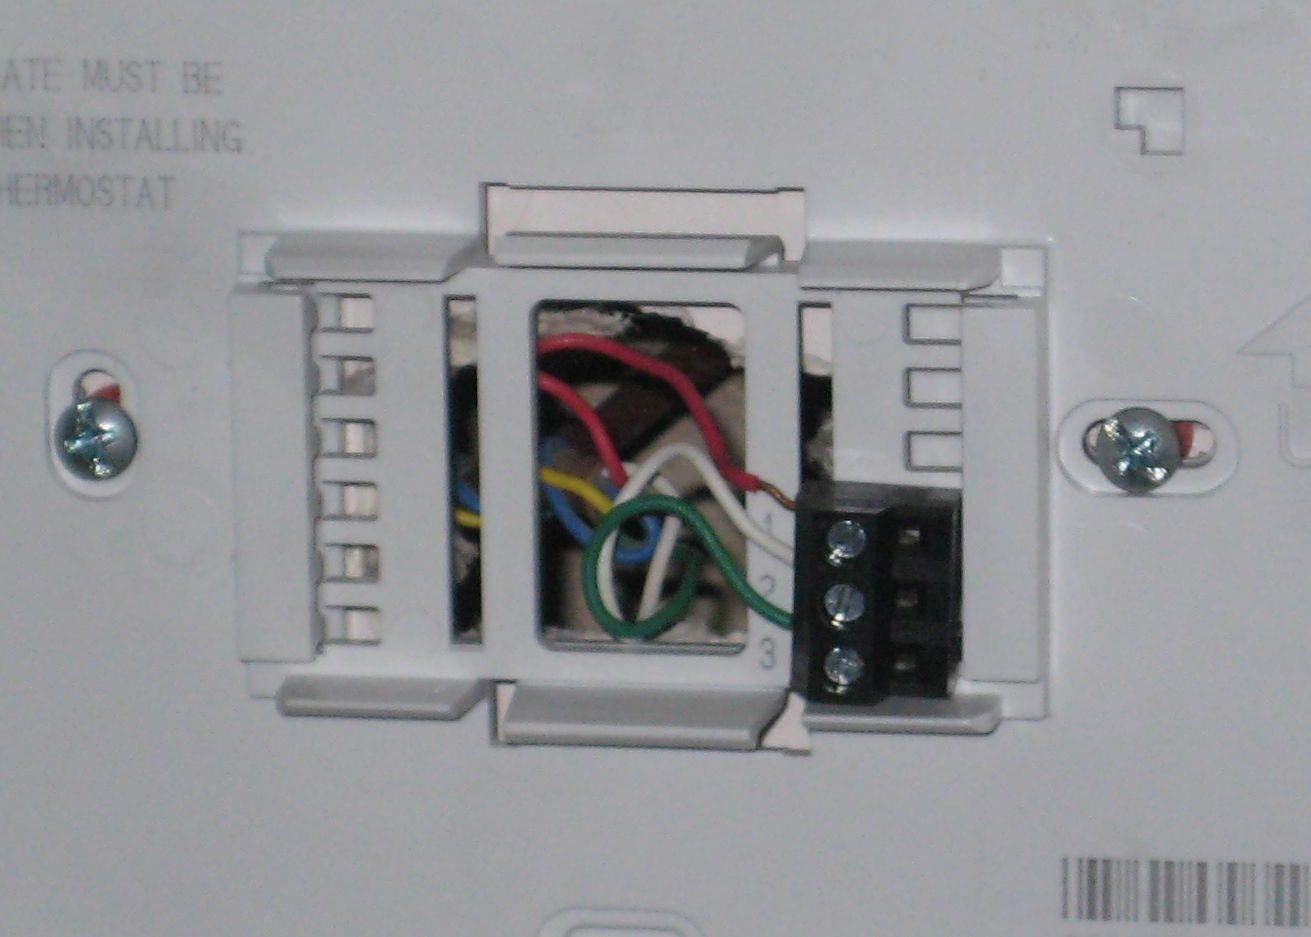 Th9421c1004 wiring electrical drawing wiring diagram lightning strike at our house now an xc15 a c unit gives error rh justanswer com honeywell th9421c1004 wiring honeywell th9421c1004 wiring asfbconference2016 Choice Image